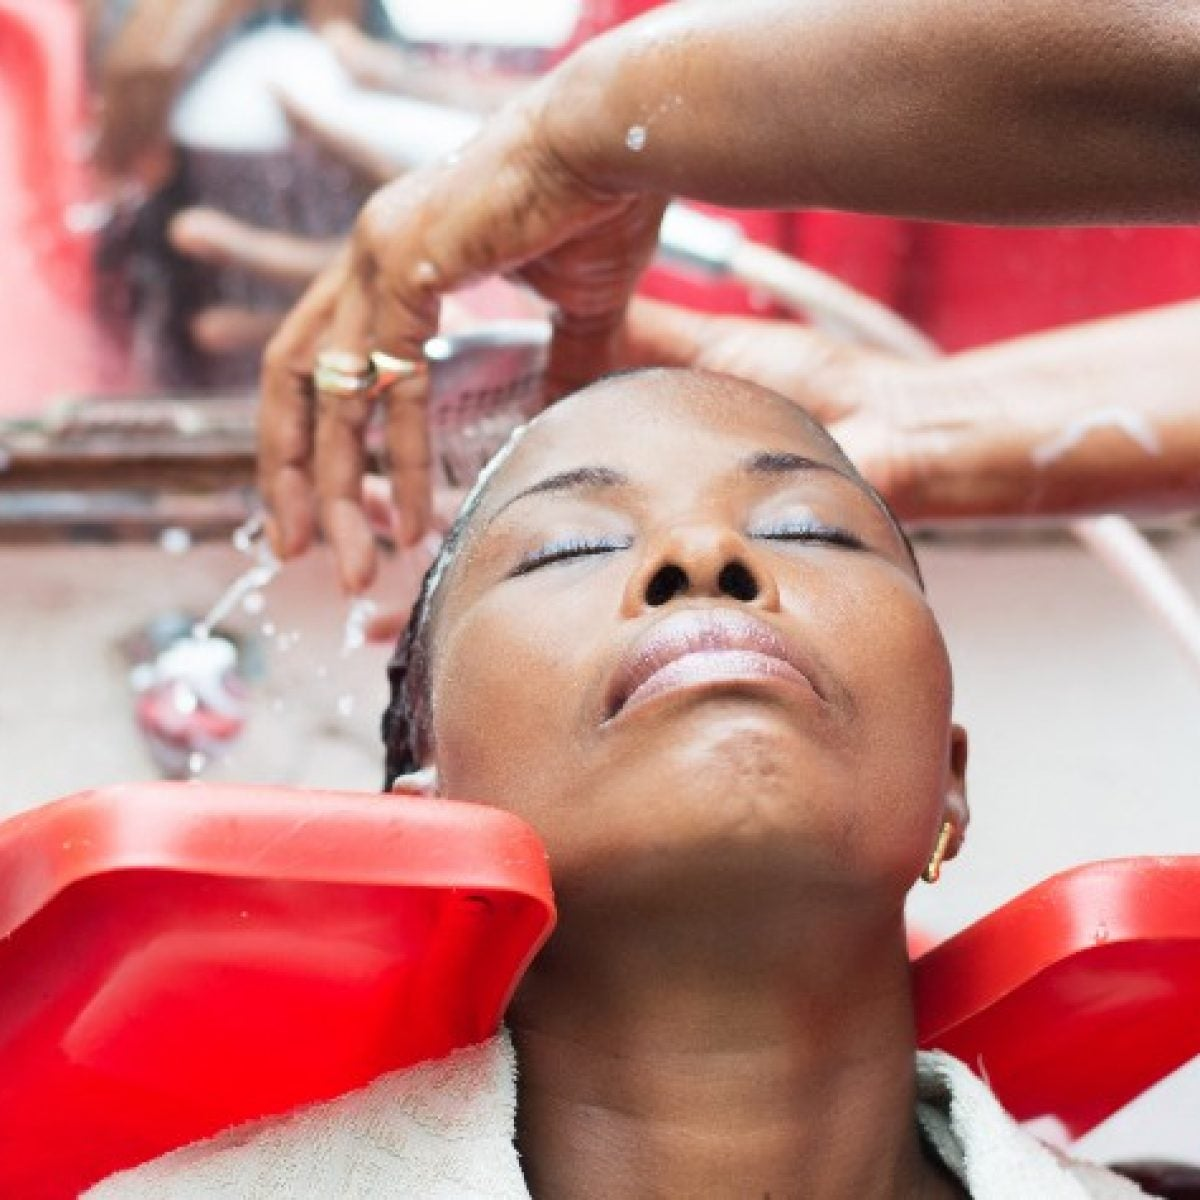 CBON Group Offers Best Practices For Salons Reopening During The Pandemic